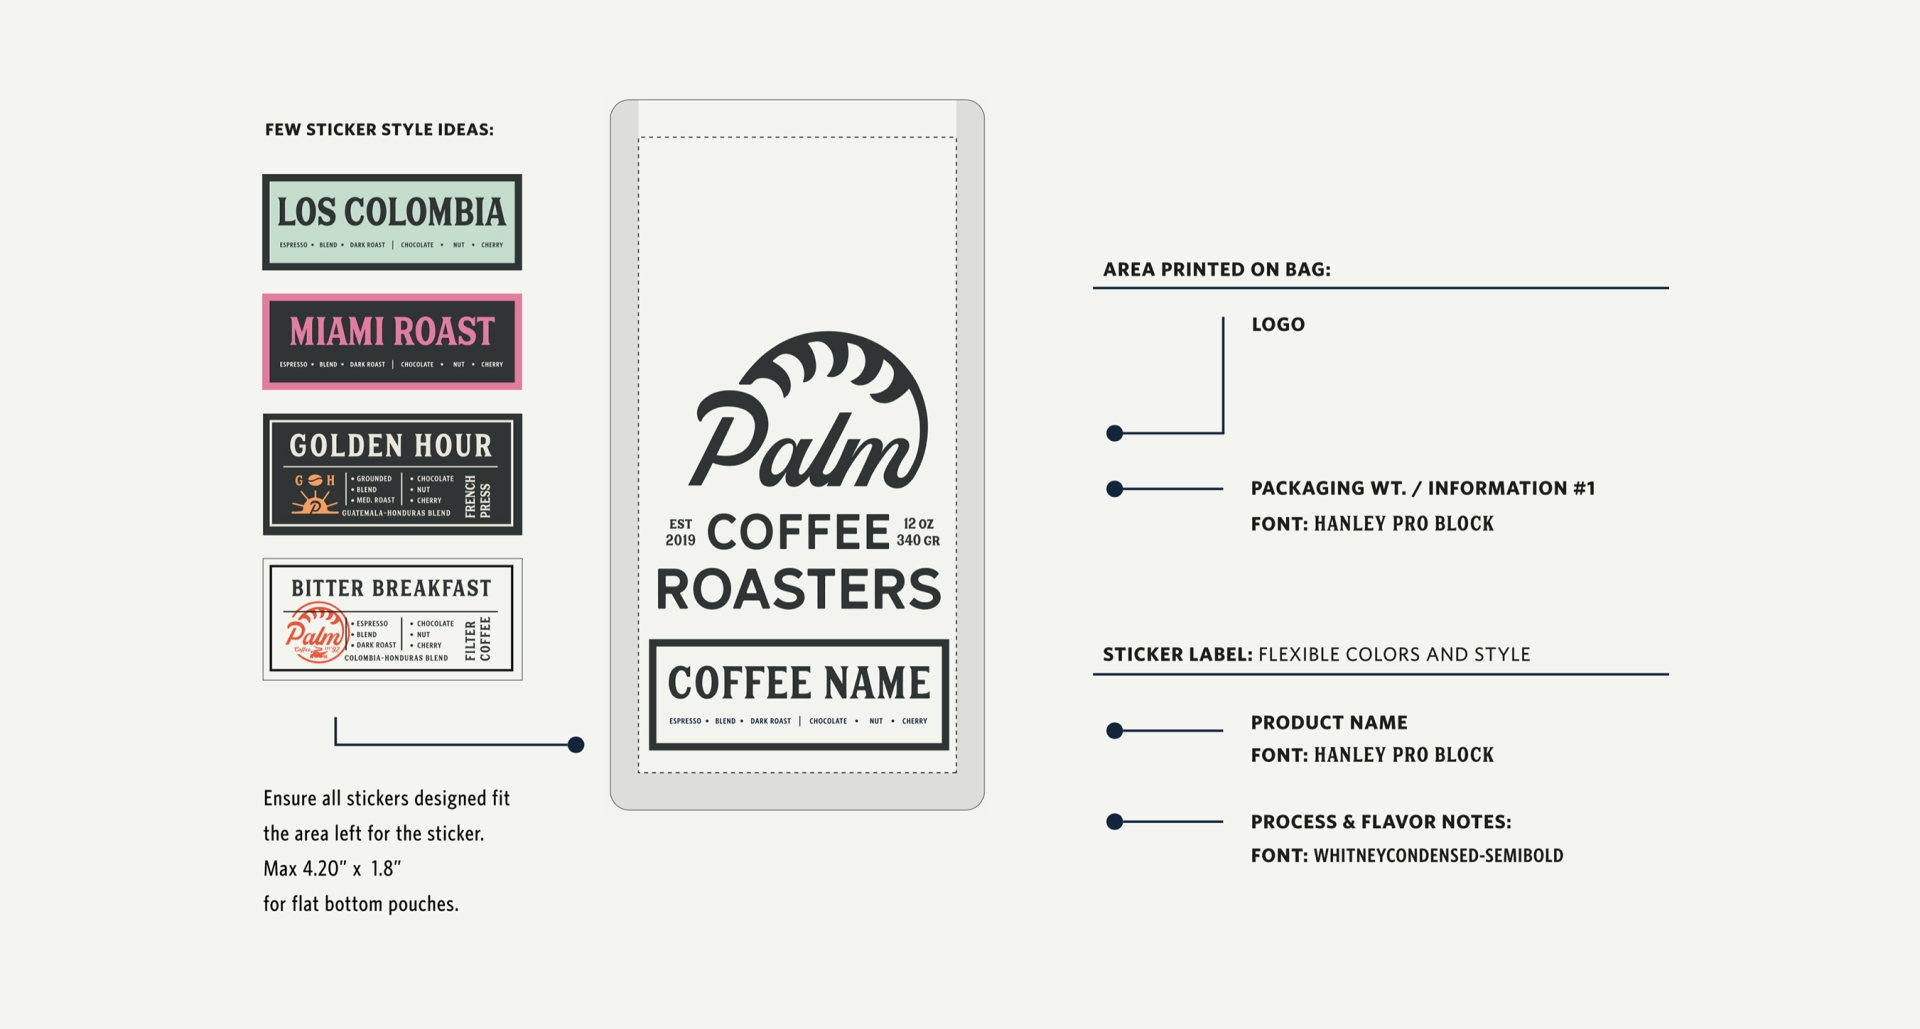 brand-guideline-design-zeki-michael-style-guidelines-strategy-packaging-example-top-roastery-florida-new-york-california-bay-area-florida-miami-zeki-michael